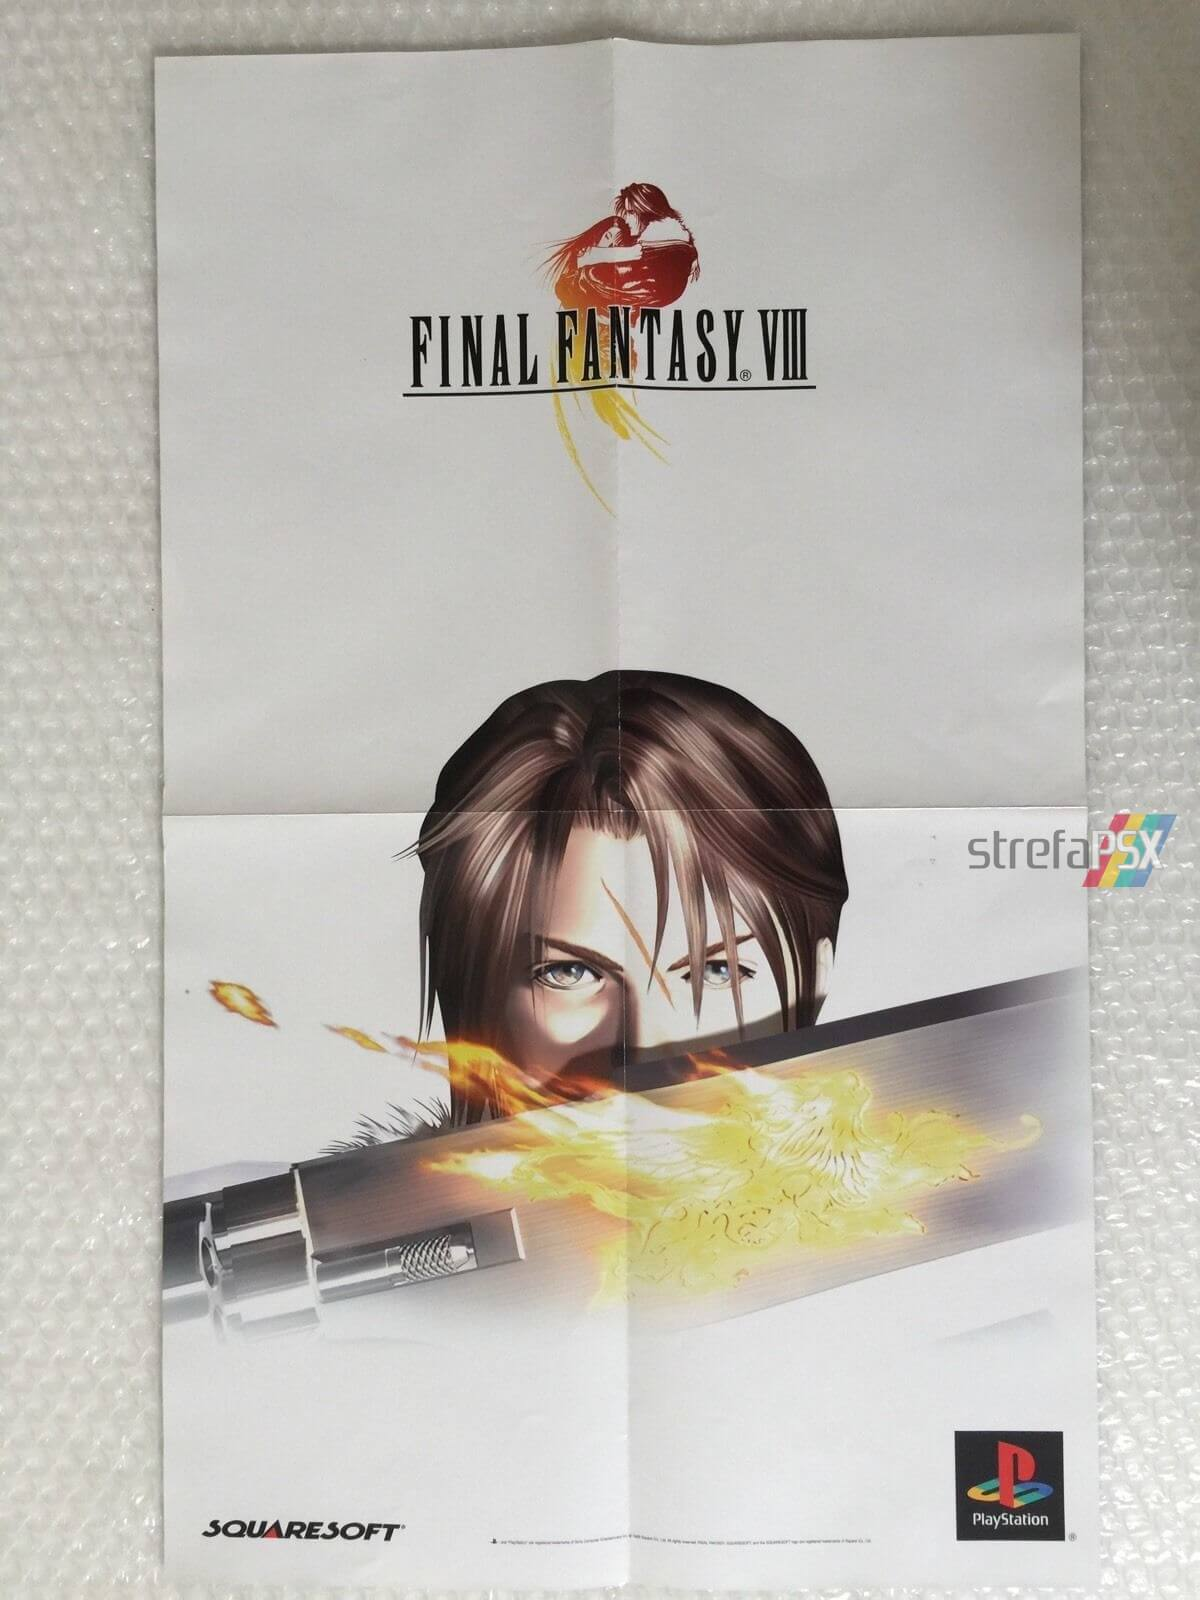 final fantasy viii limited edition12 - Kolekcjonerskie wydania gier - Final Fantasy VIII Limited Edition